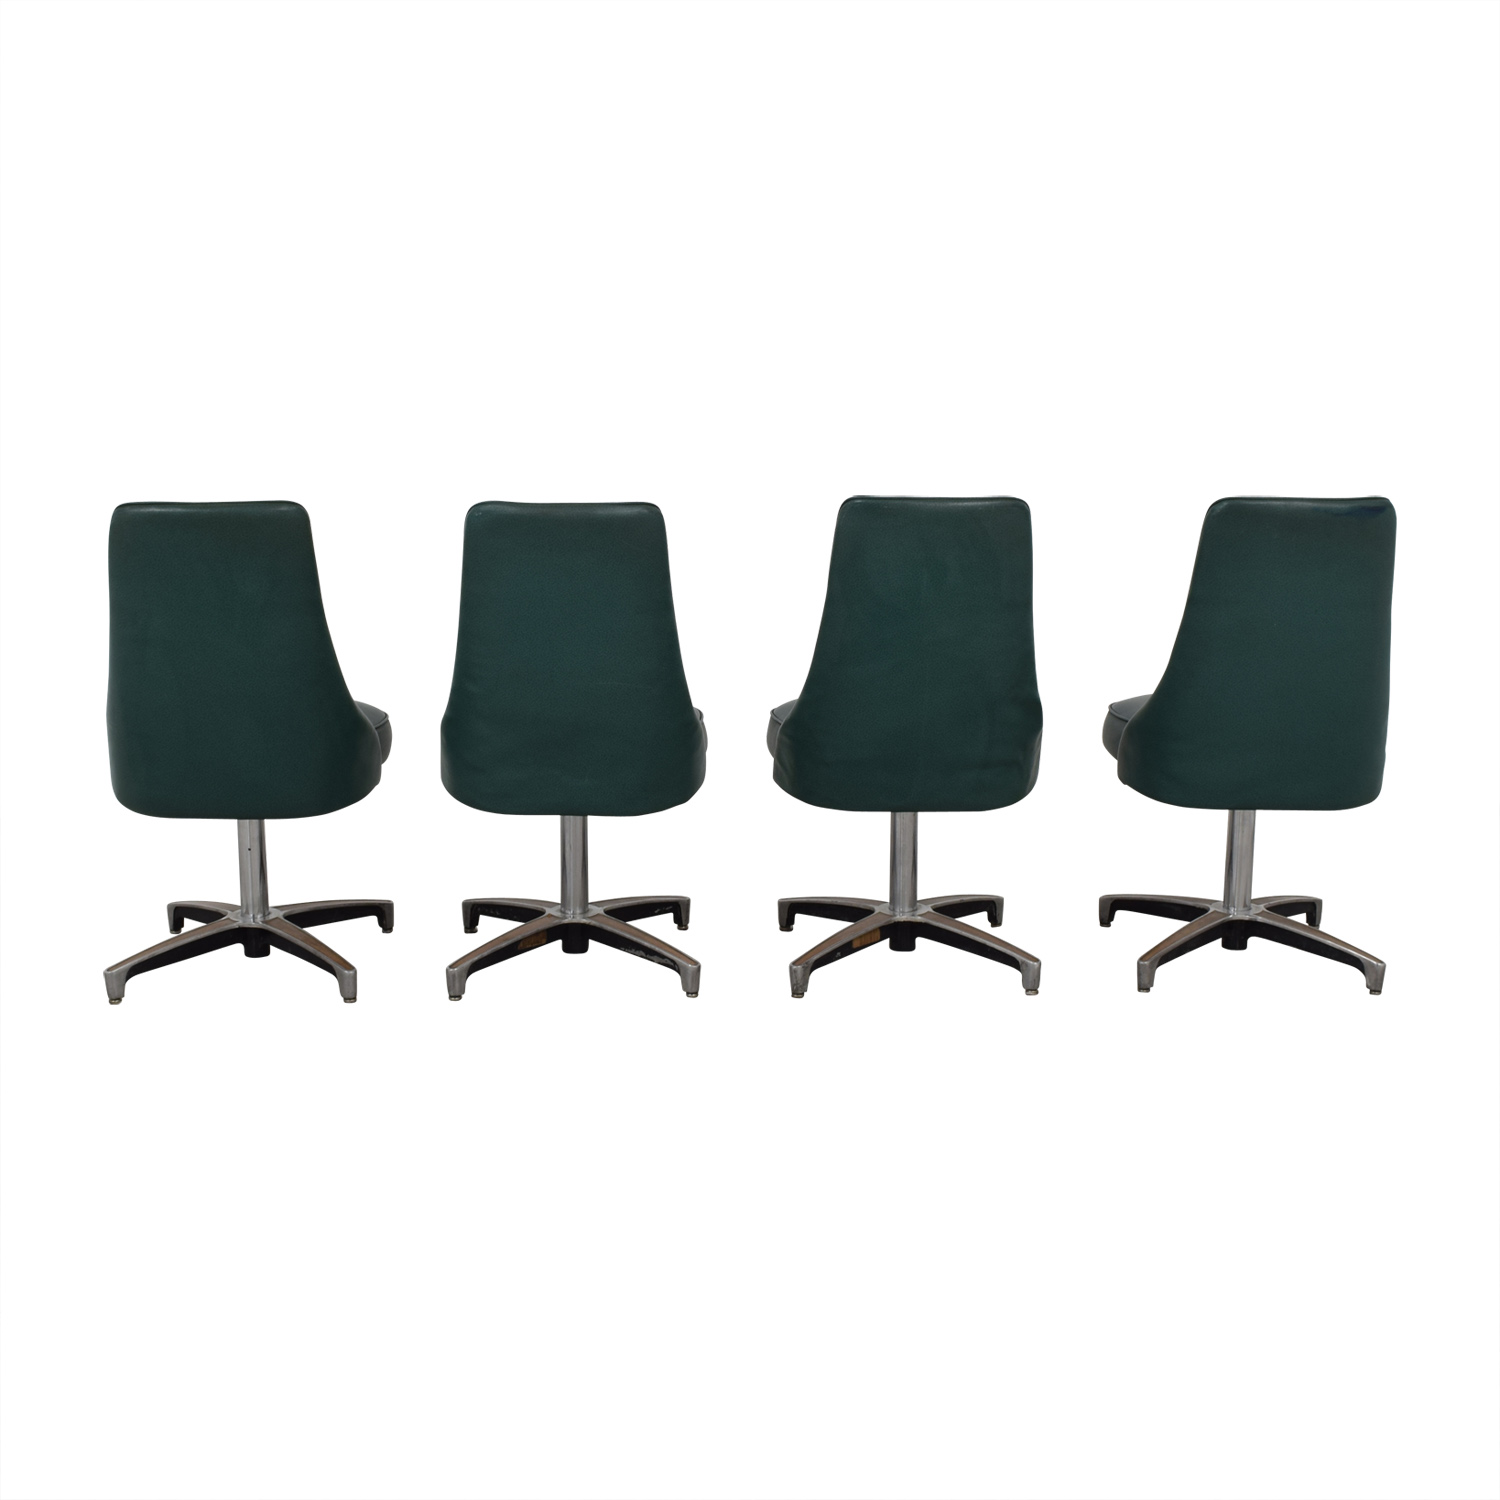 buy  Vintage Teal Green Dining Chairs online